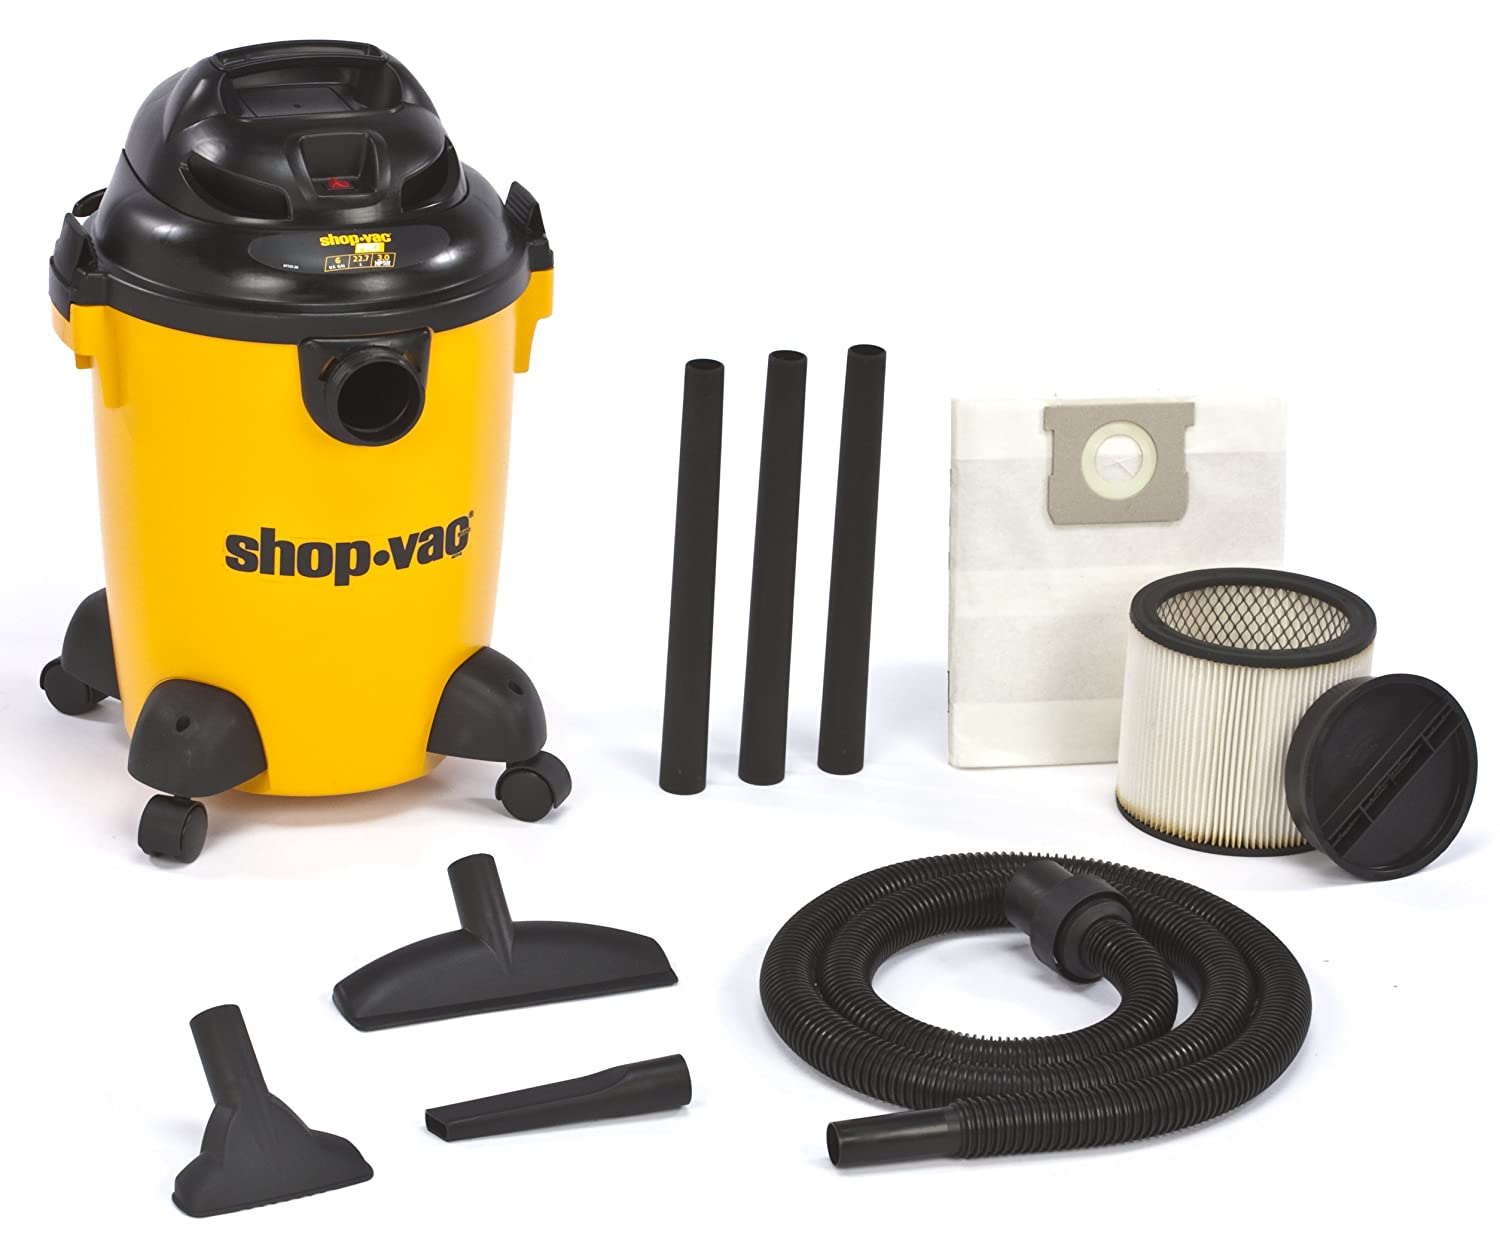 Shop-Vac 9650600 3.0-Peak HP Pro Series Wet or Dry Vacuum, 6-Gallon $59.99